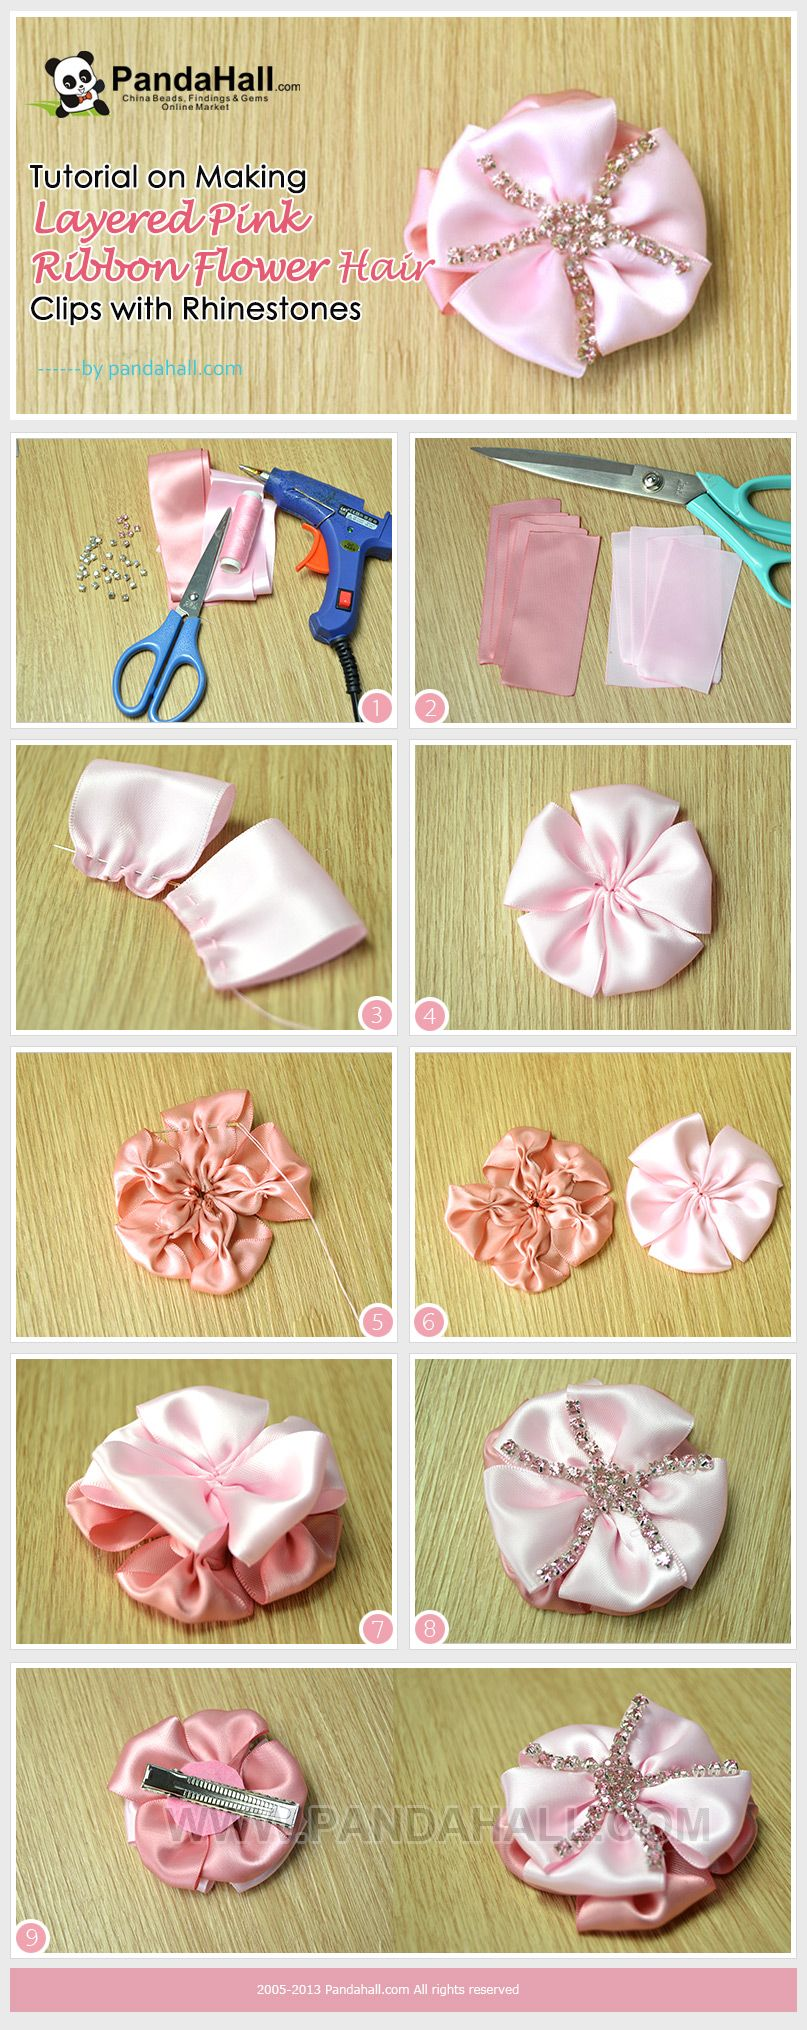 Tutorial On Making Layered Pink Ribbon Flower Hair Clips With